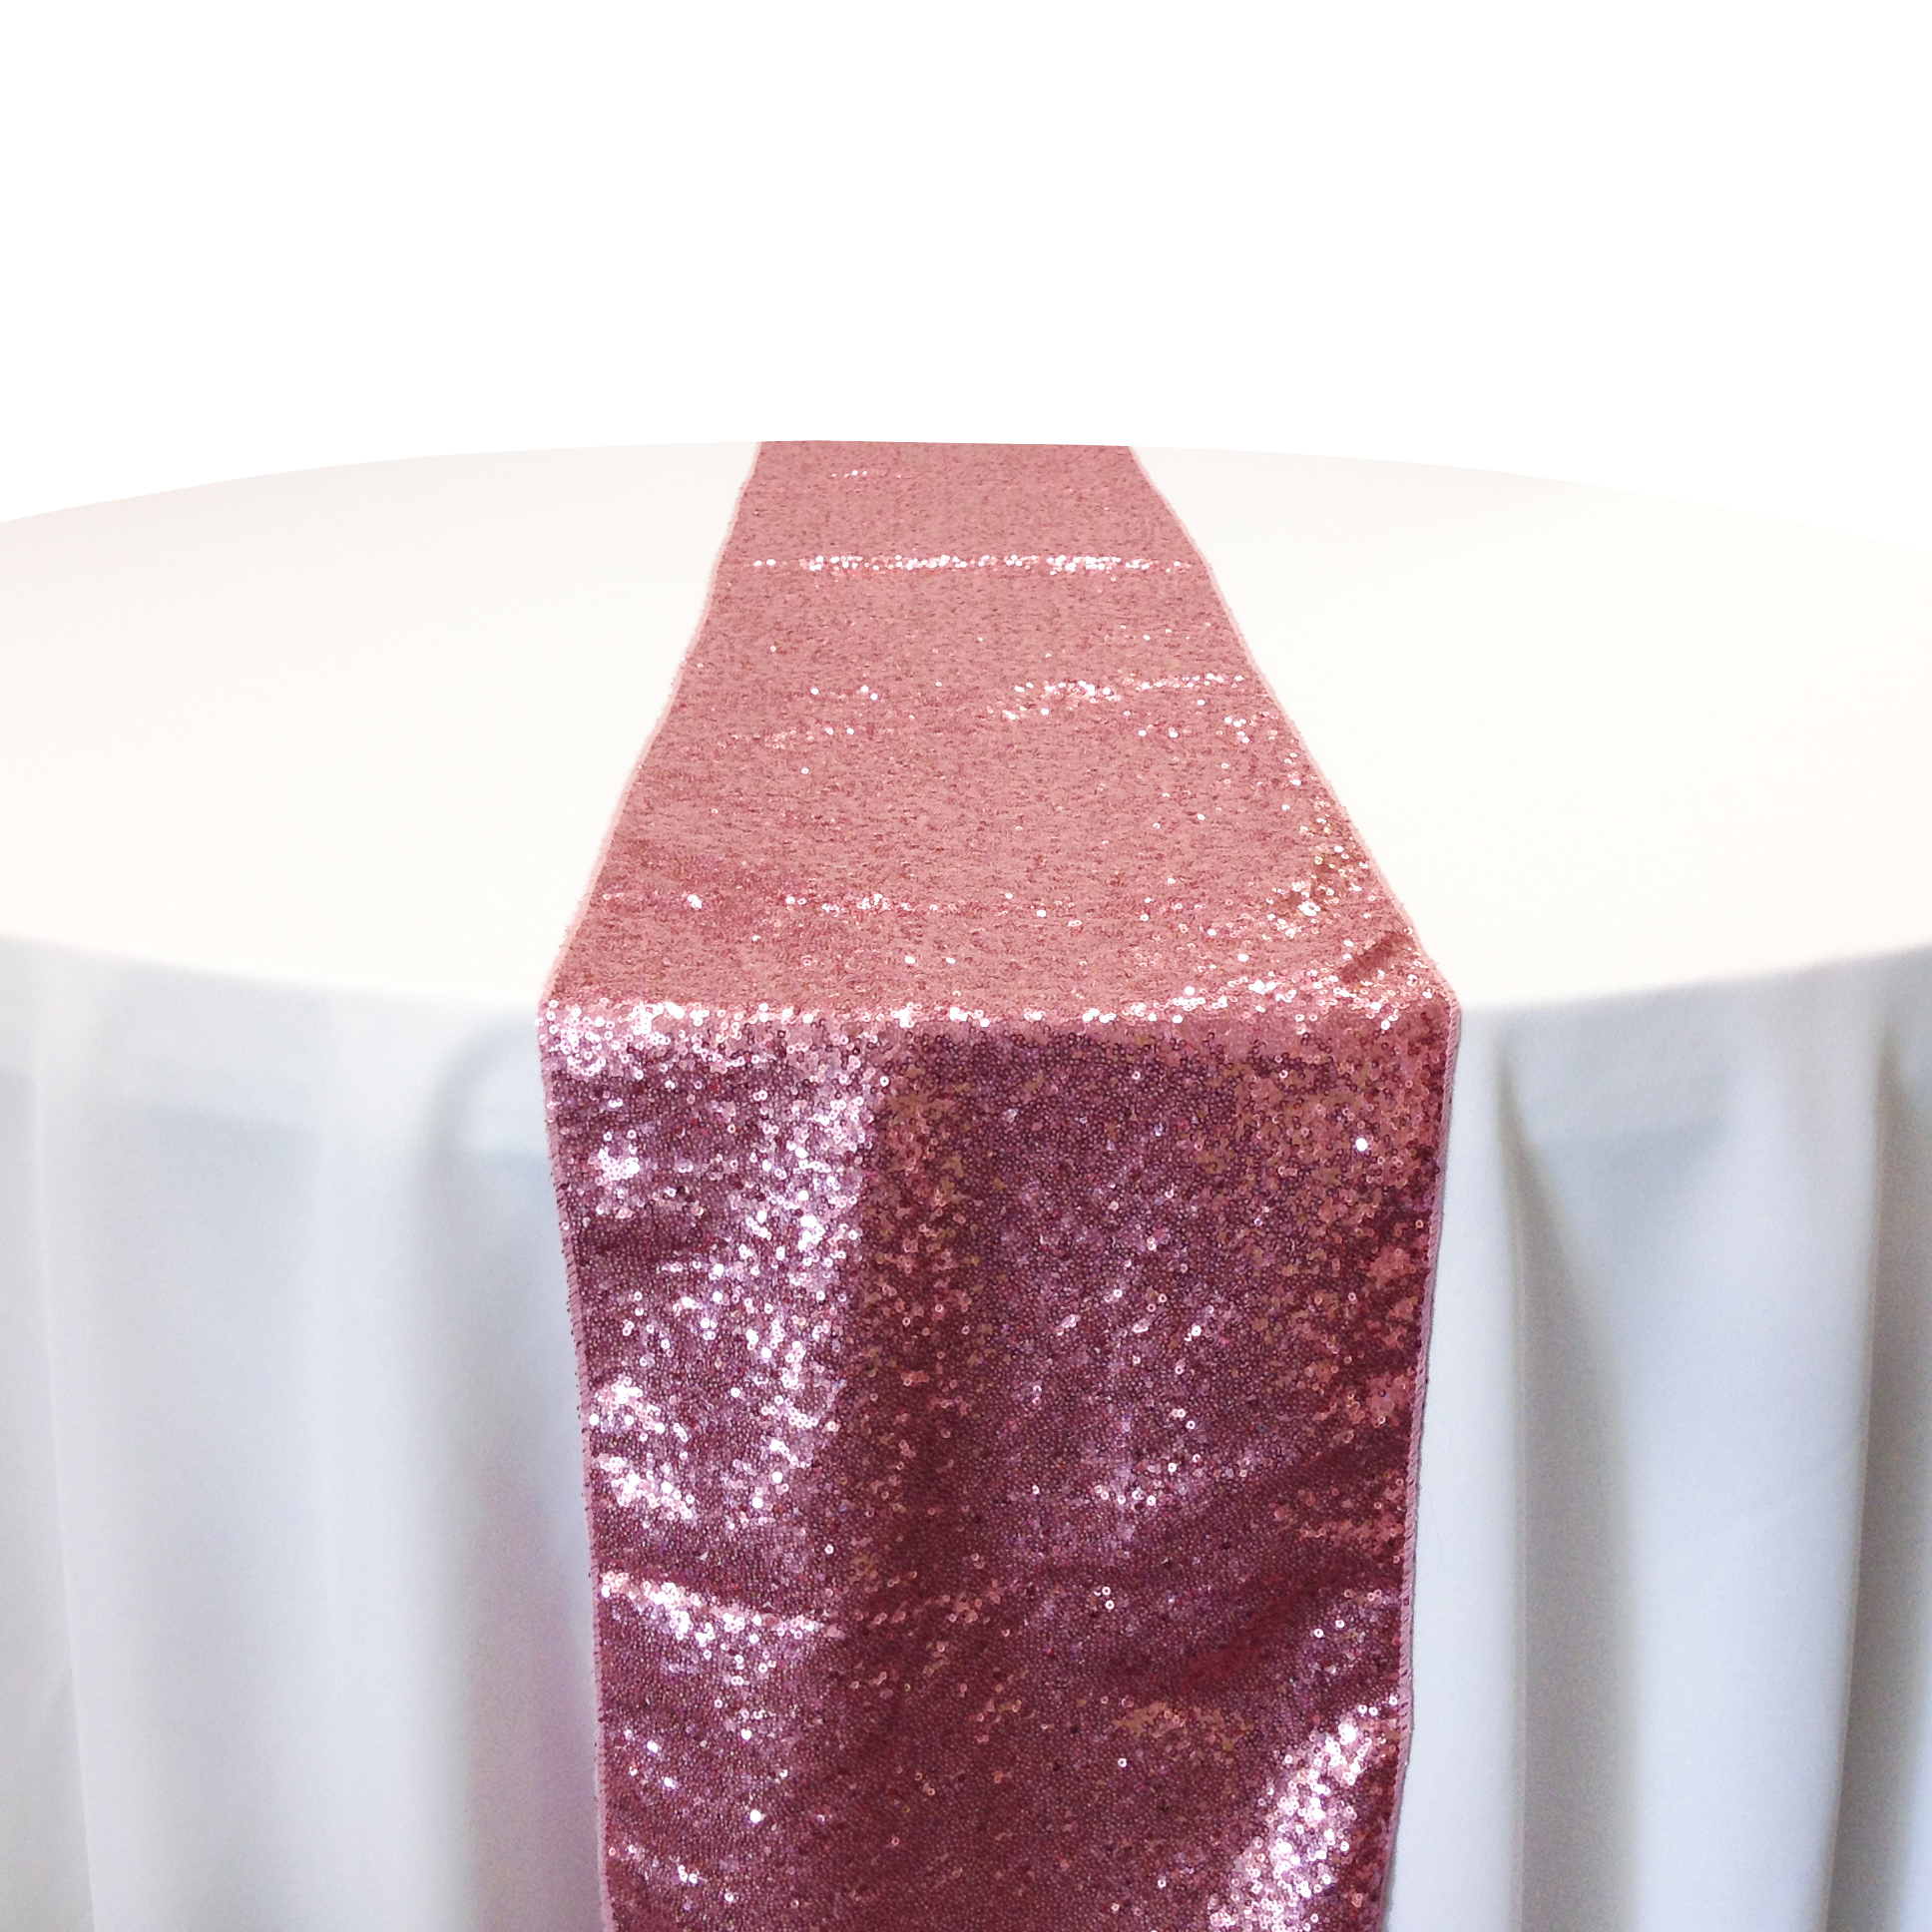 Pink Taffeta Sequin Table Runner Rental Pink Taffeta Glitz Table Runner Rental